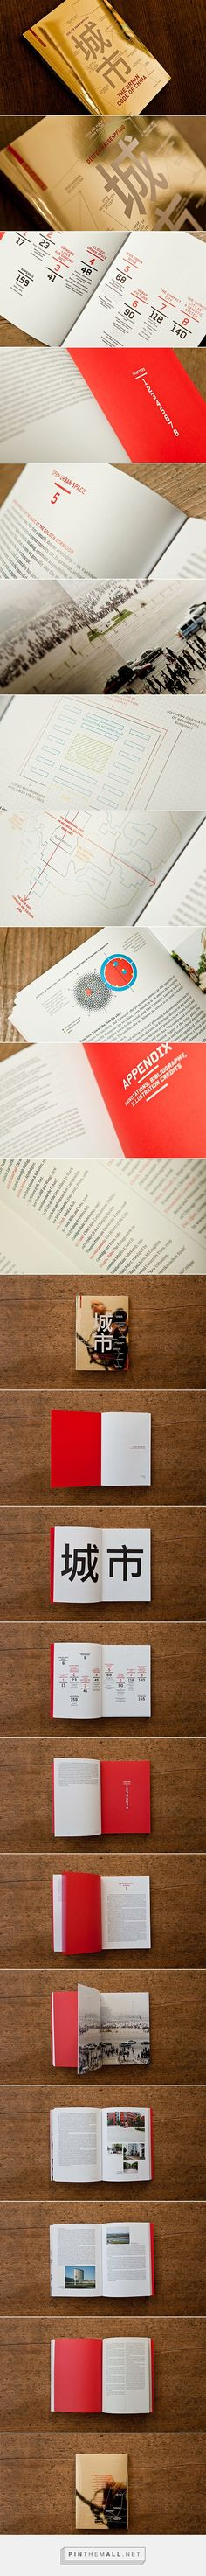 The Urban Code of China on Behance... - a grouped images picture - Pin Them All